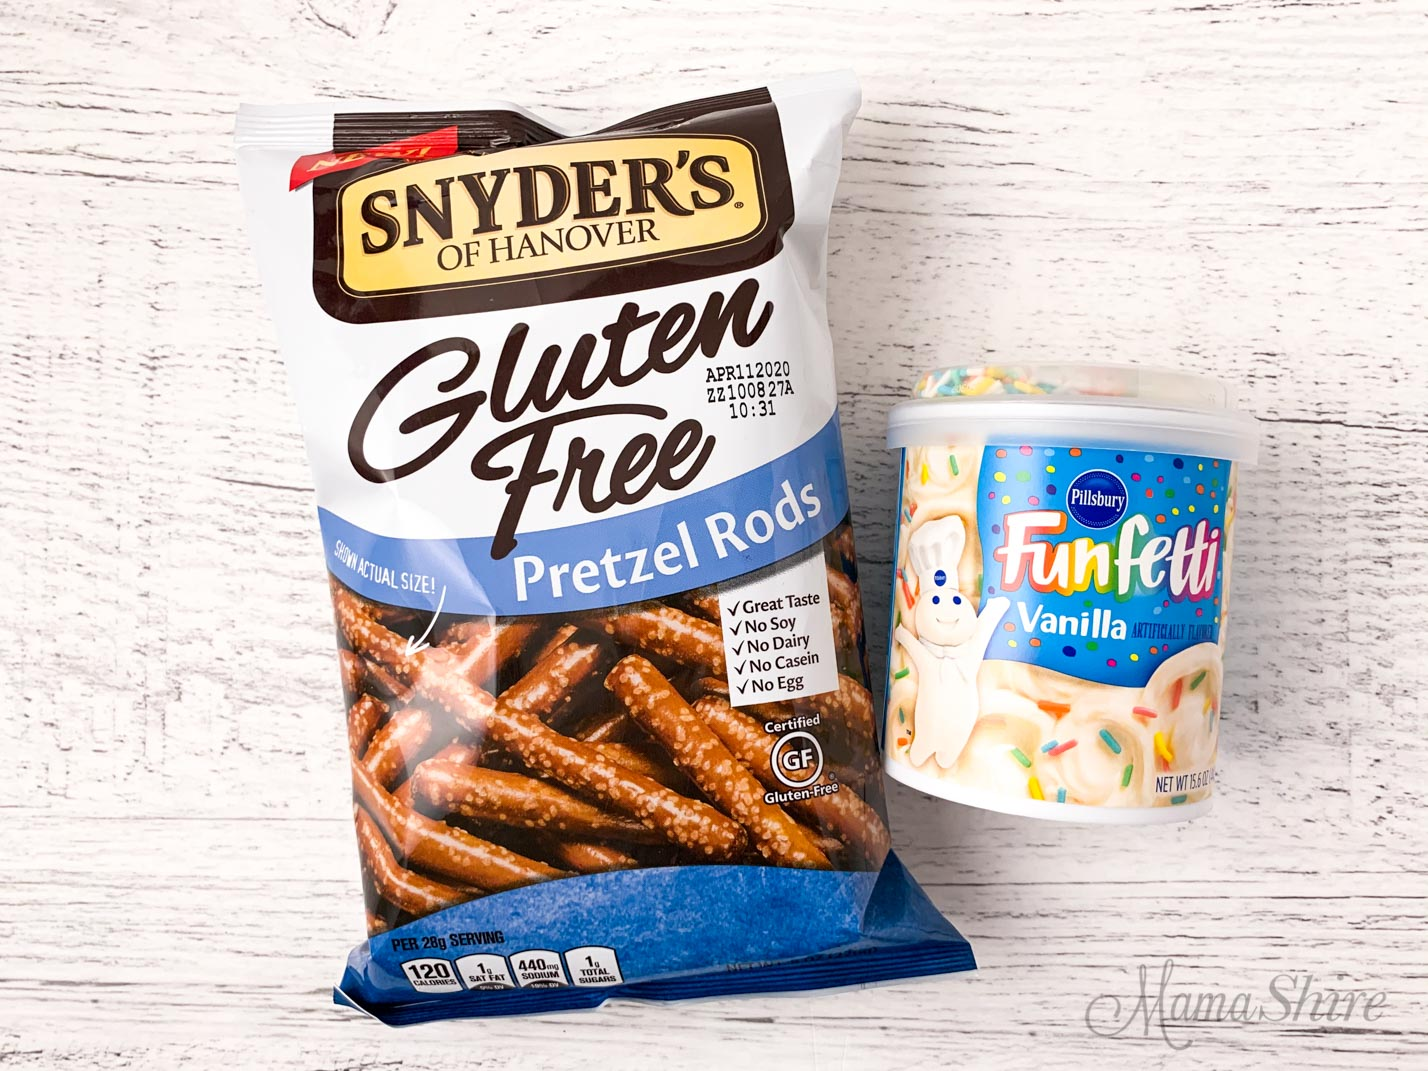 Two ingredients needed for yummy icing covered gluten-free pretzels. A bag of Snyder's brand gluten-free pretzel rods and a can of Pillsbury Funfetti vanilla icing.